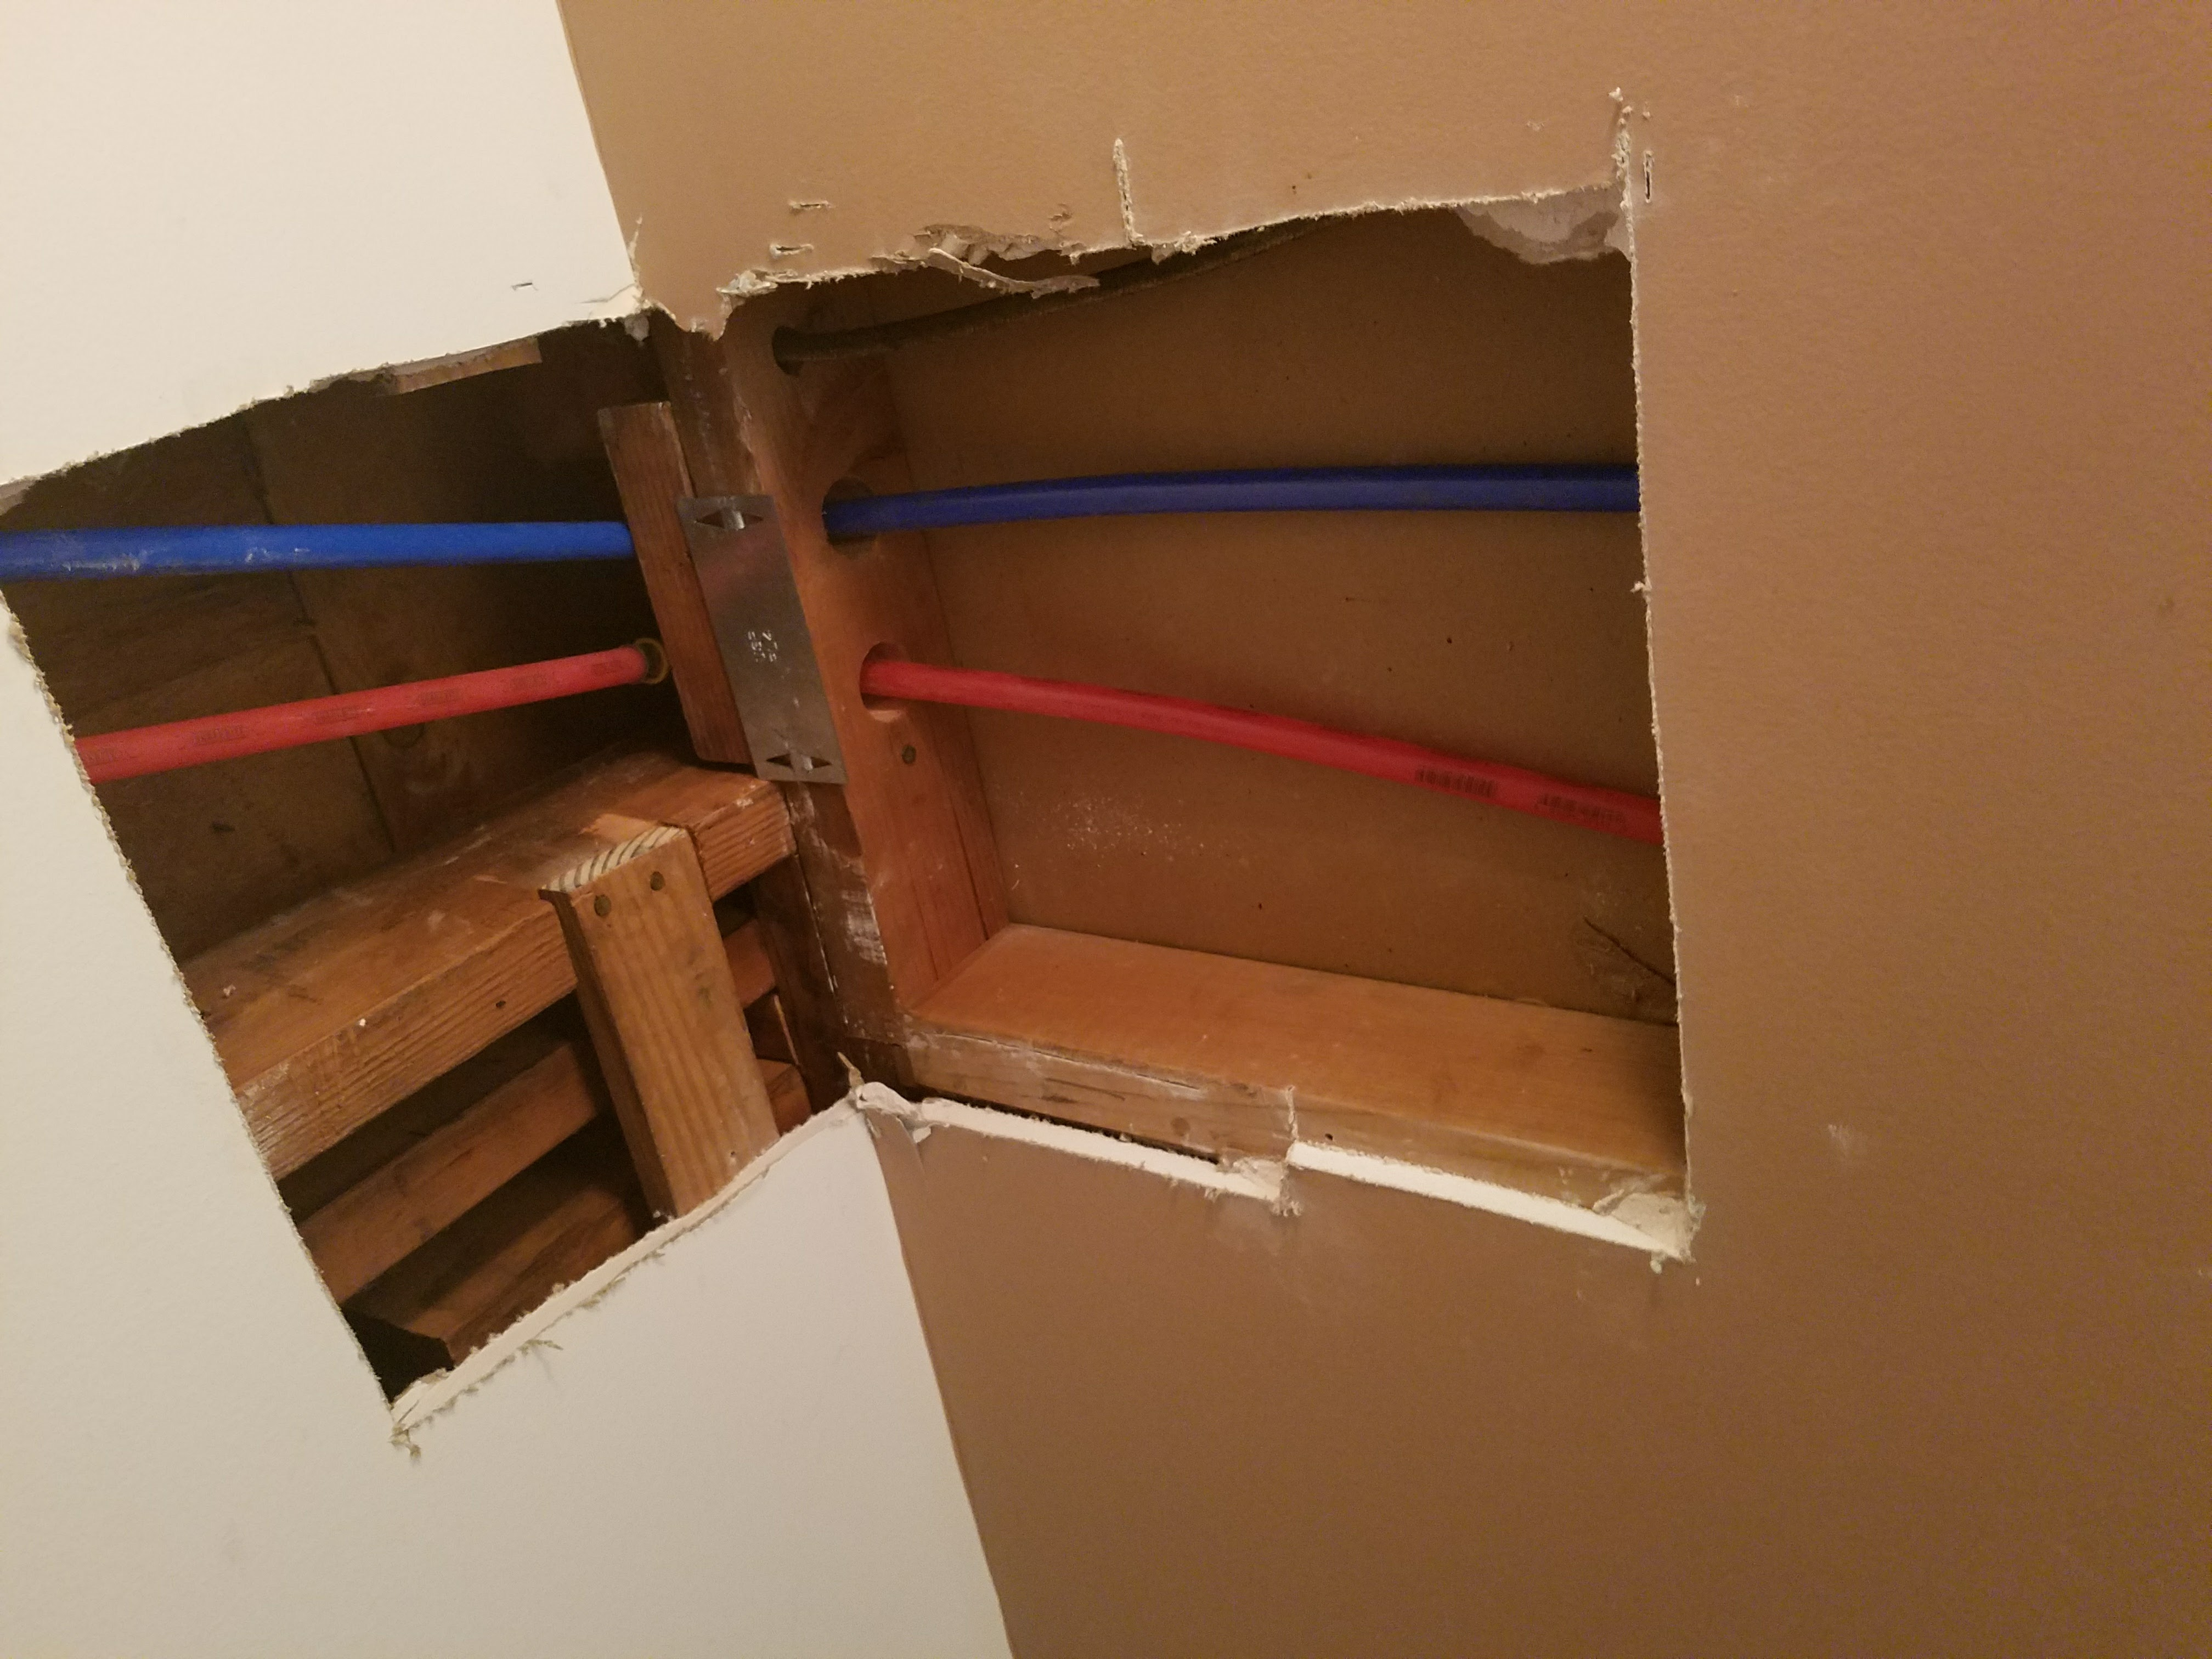 building damage img professional llc repair drywall ceiling water renovations